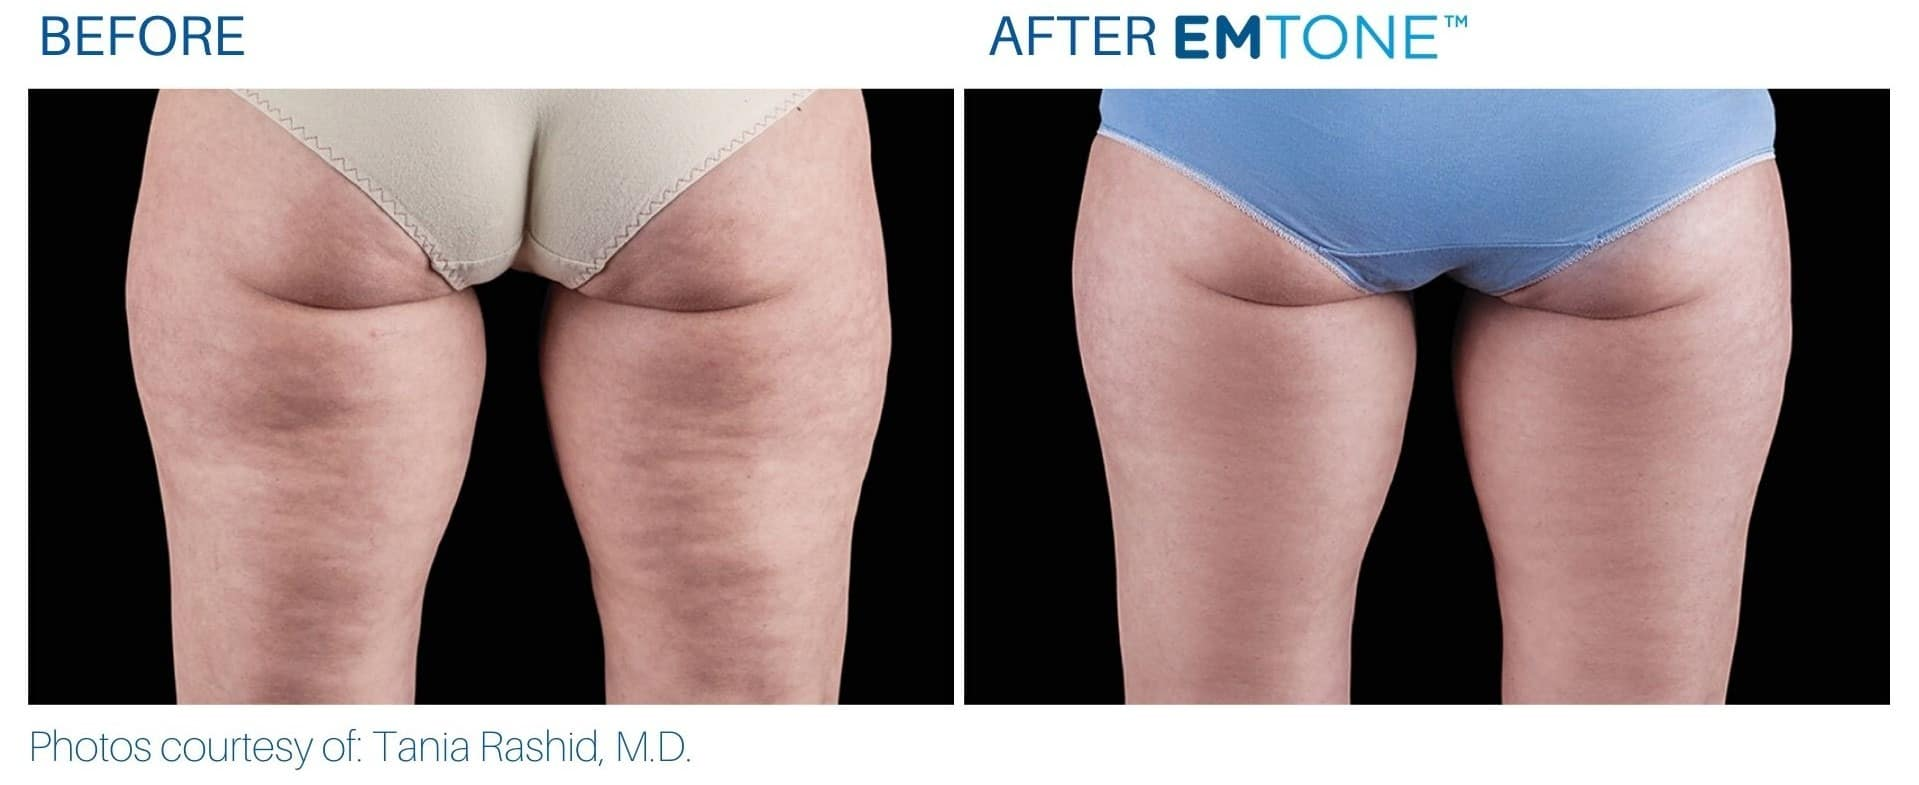 EMTONE BEFORE AND AFTER